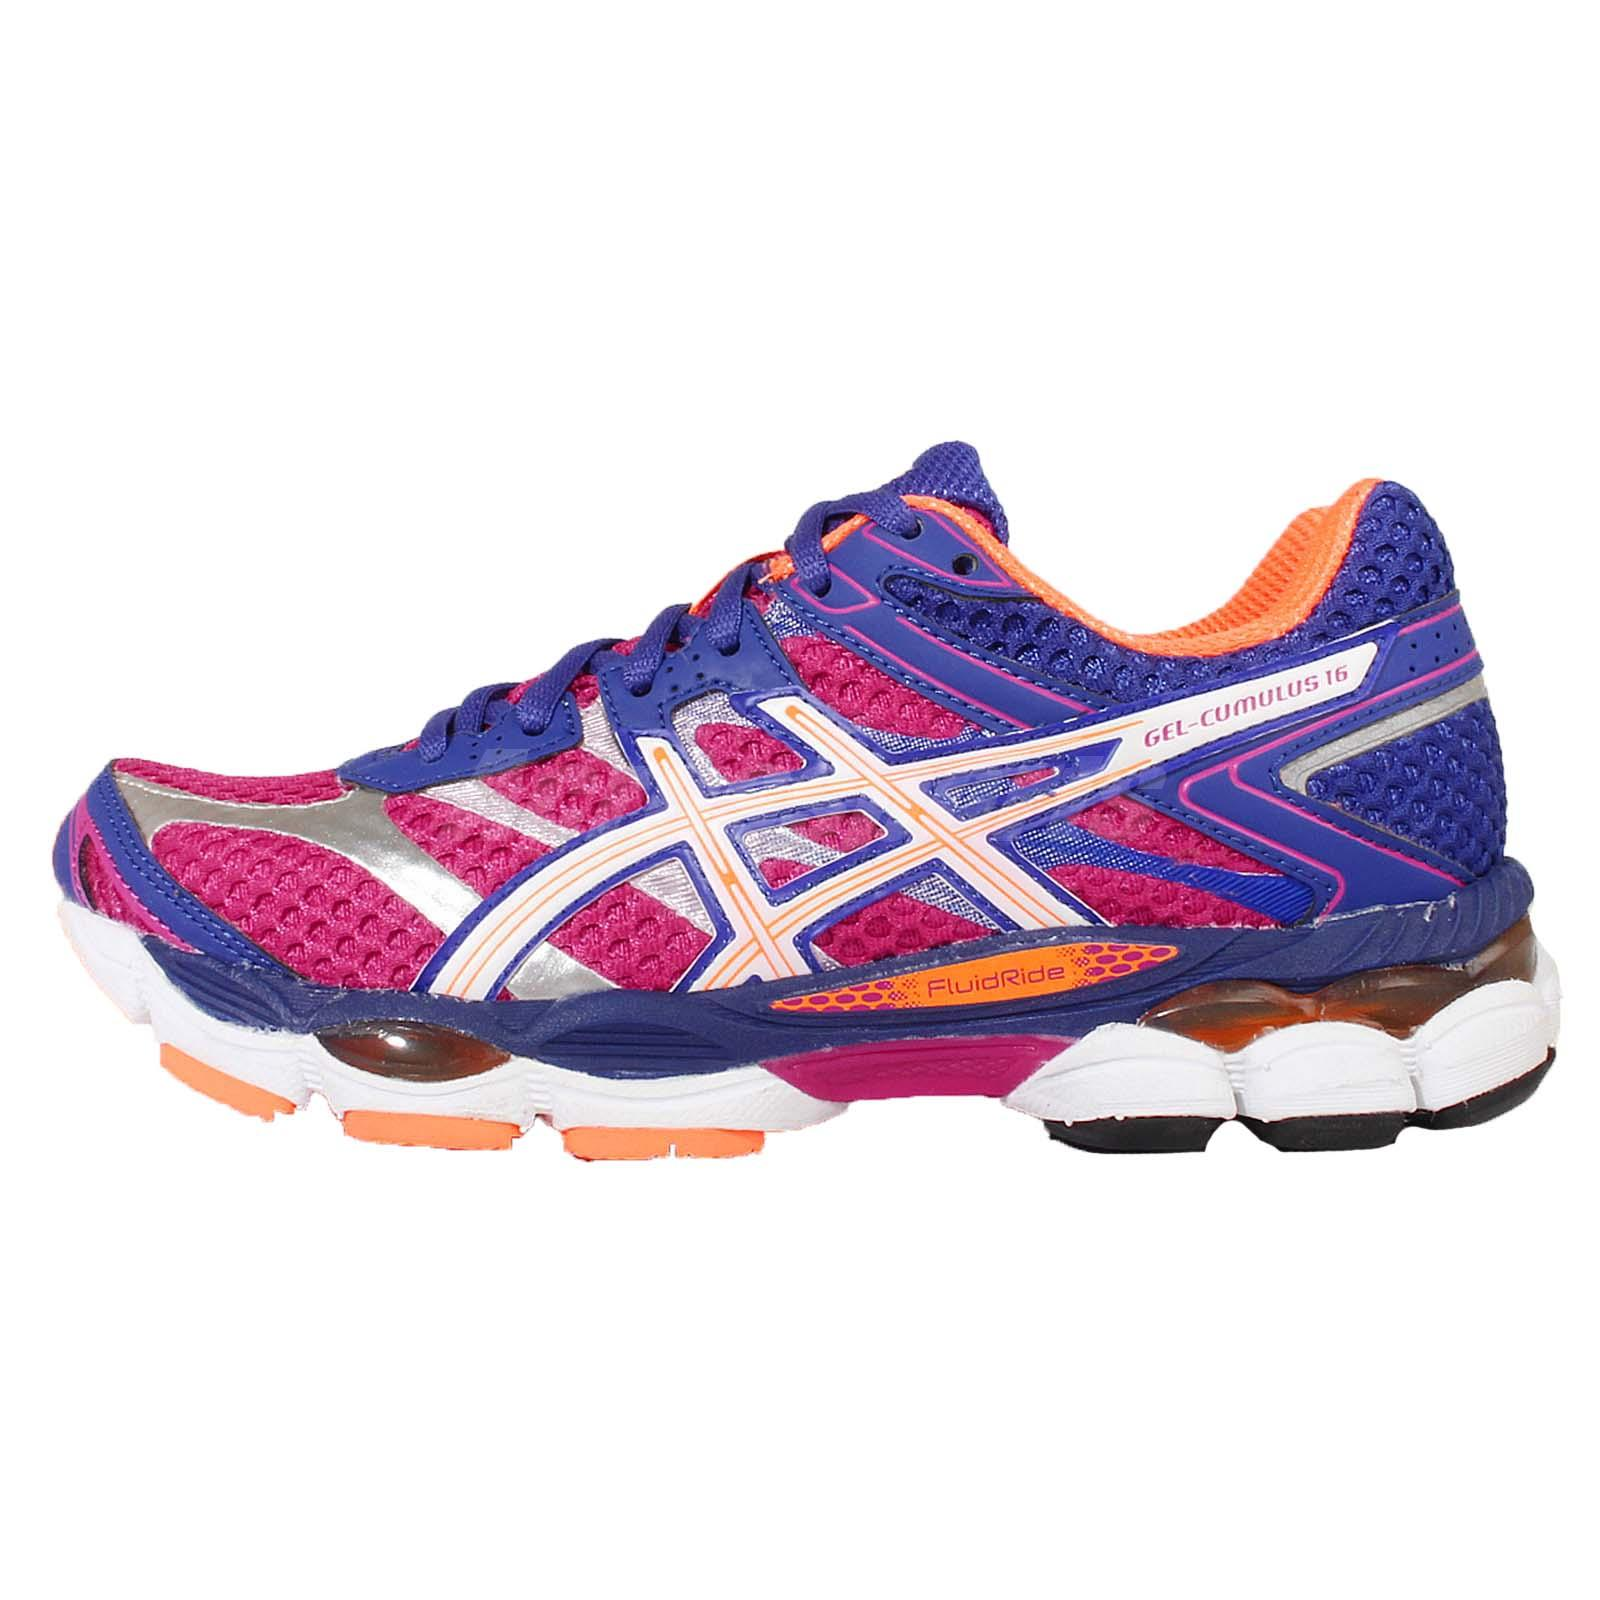 Asics Shoes Recommendations